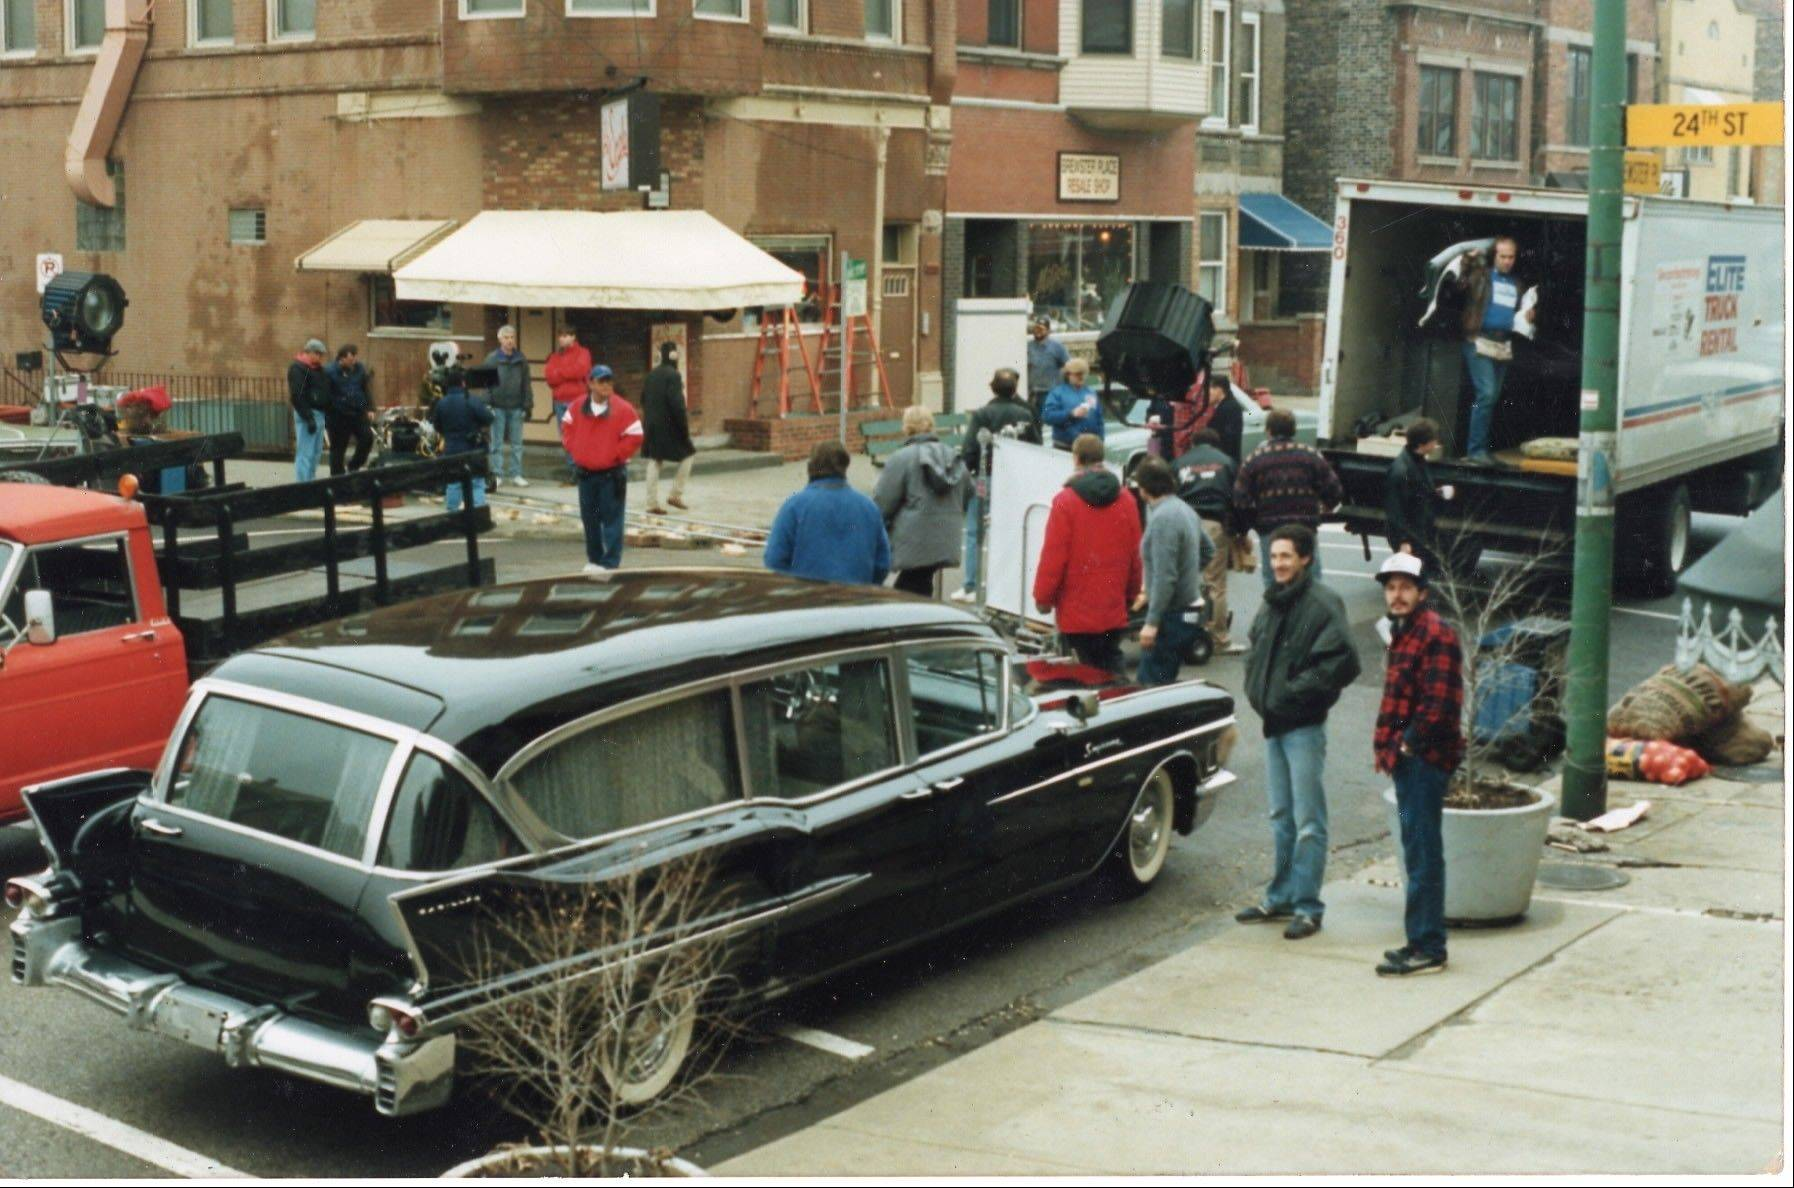 The Ahlgrim's Cadillac has been in both a movie and TV show filmed in Chicago.